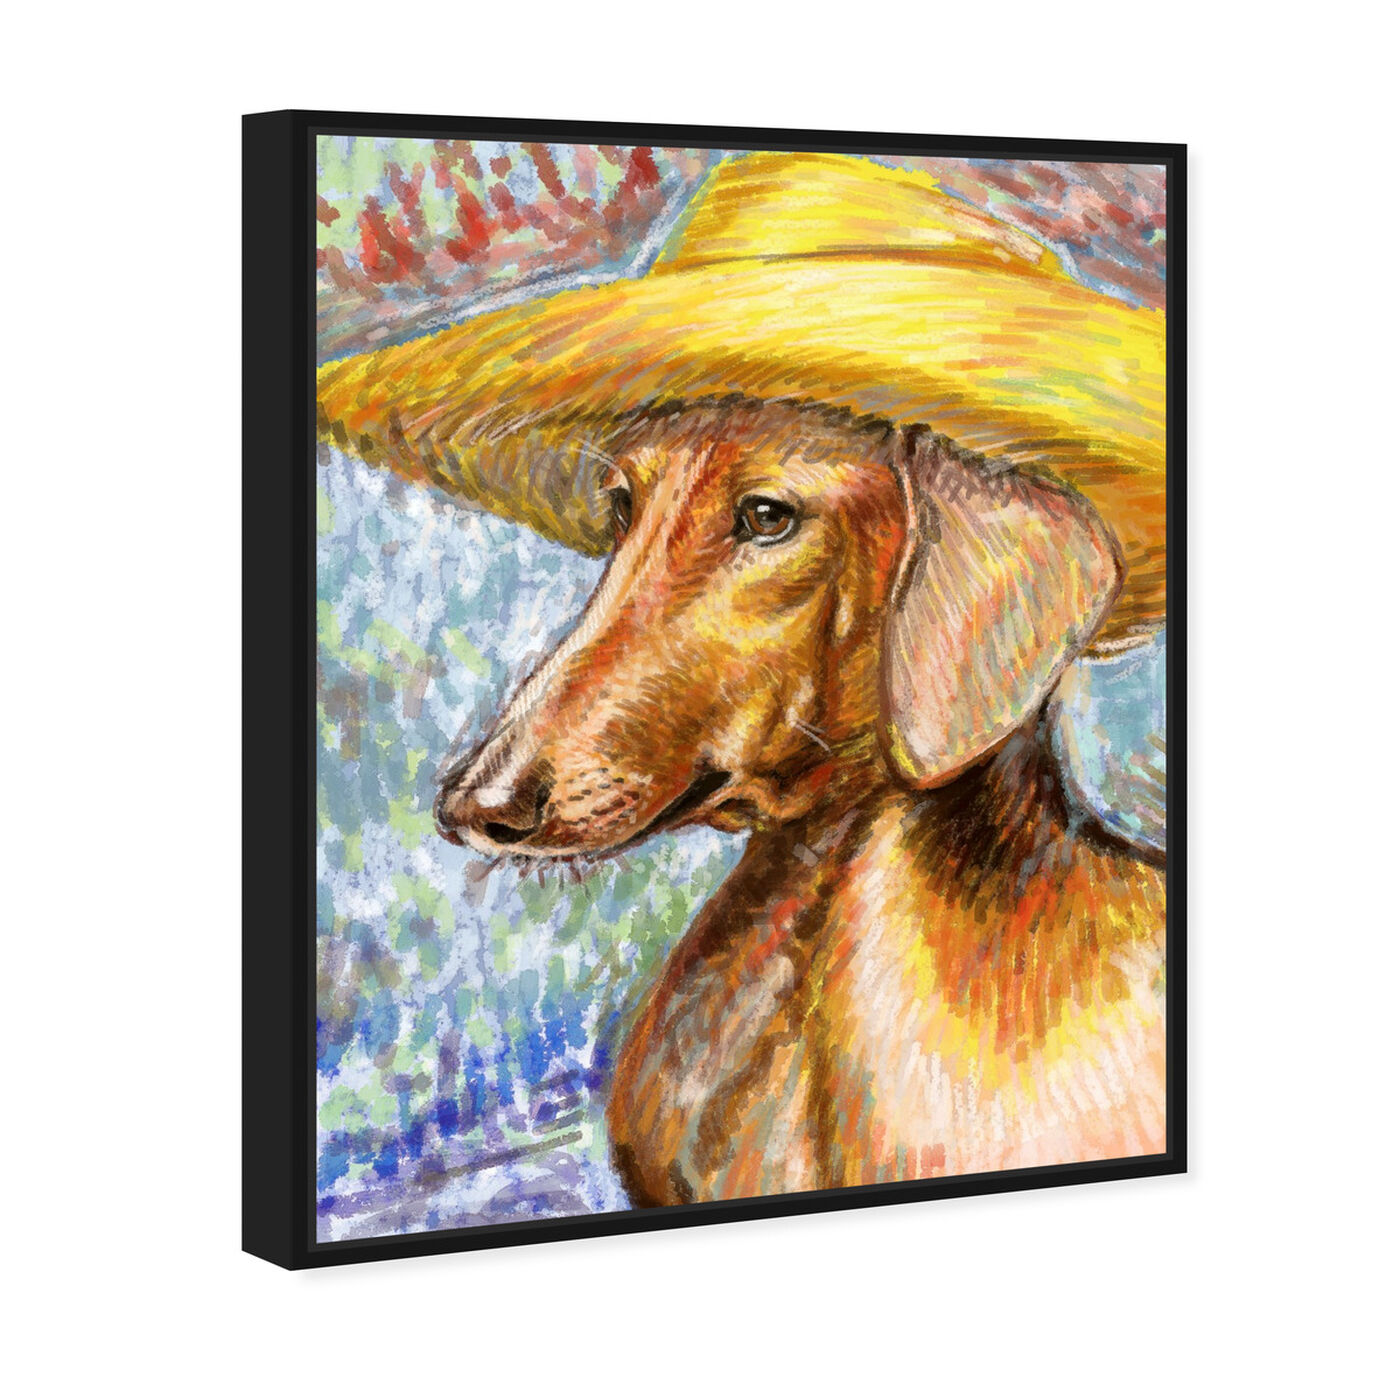 Angled view of Van Dogh By Carson Kressley featuring animals and dogs and puppies art.